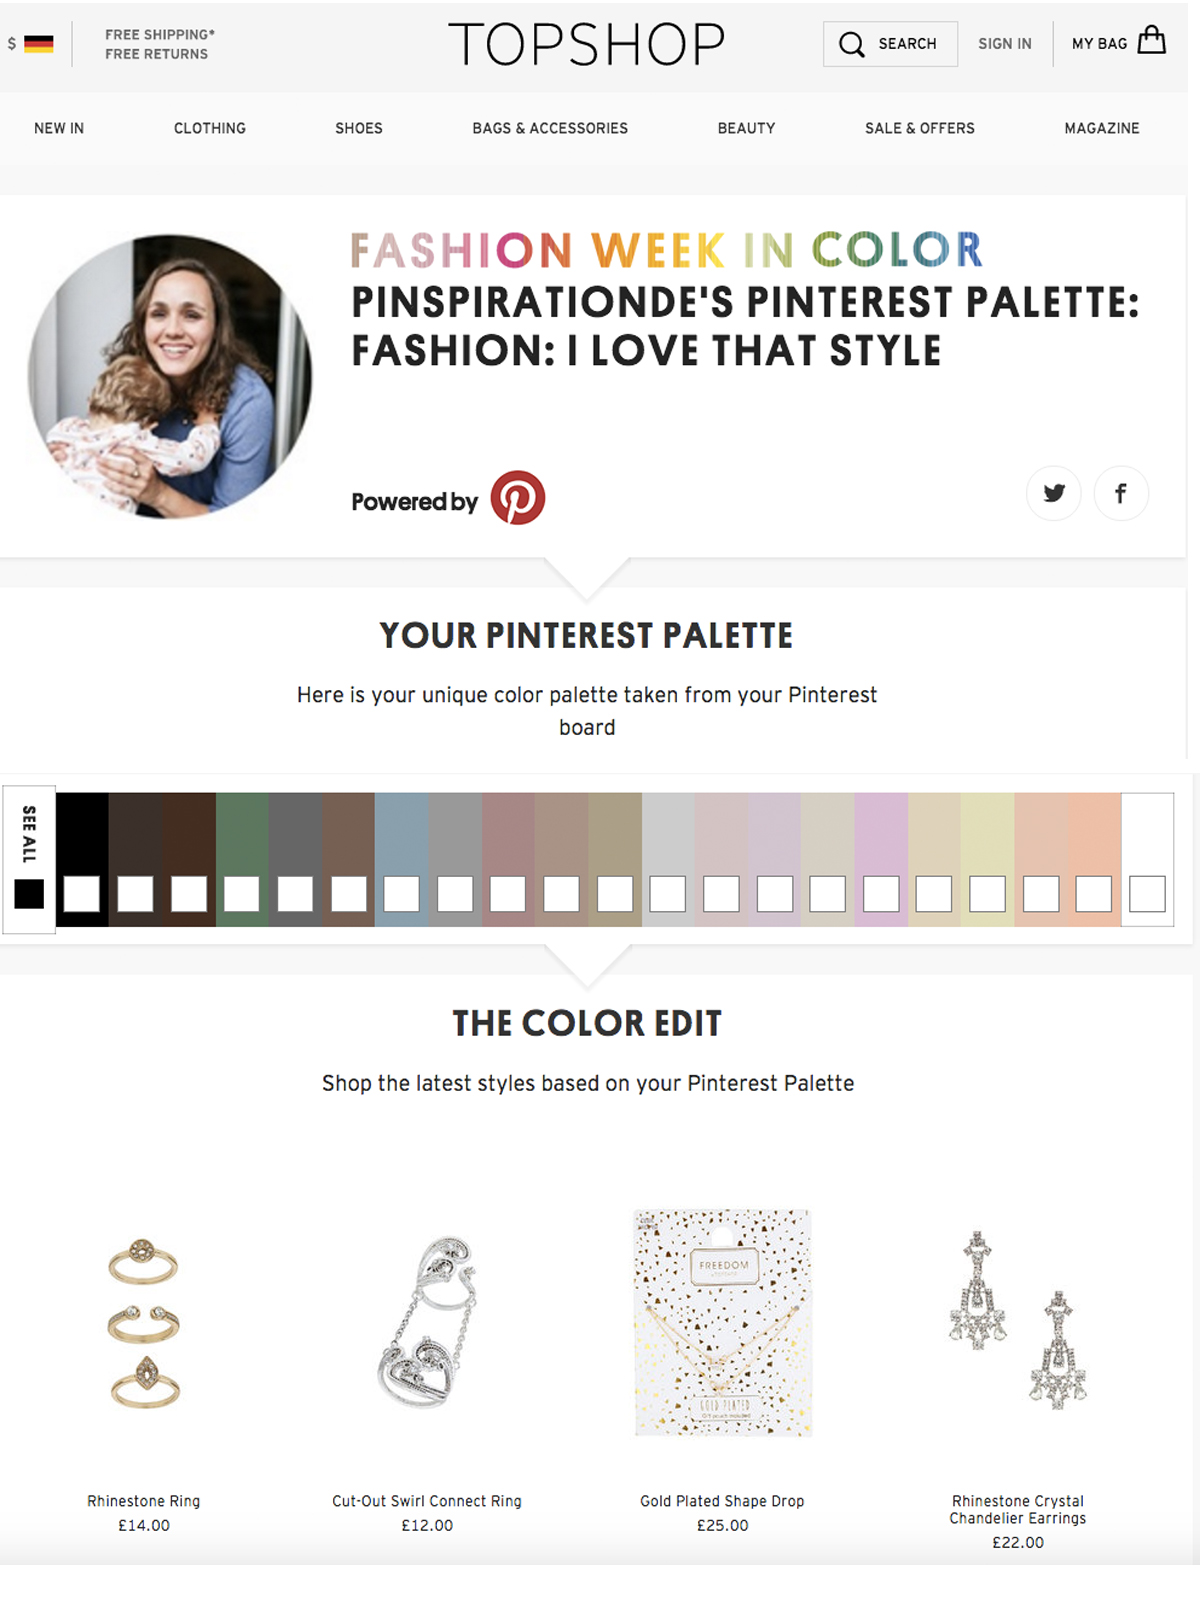 Pinspiration Pinterest Color Palette